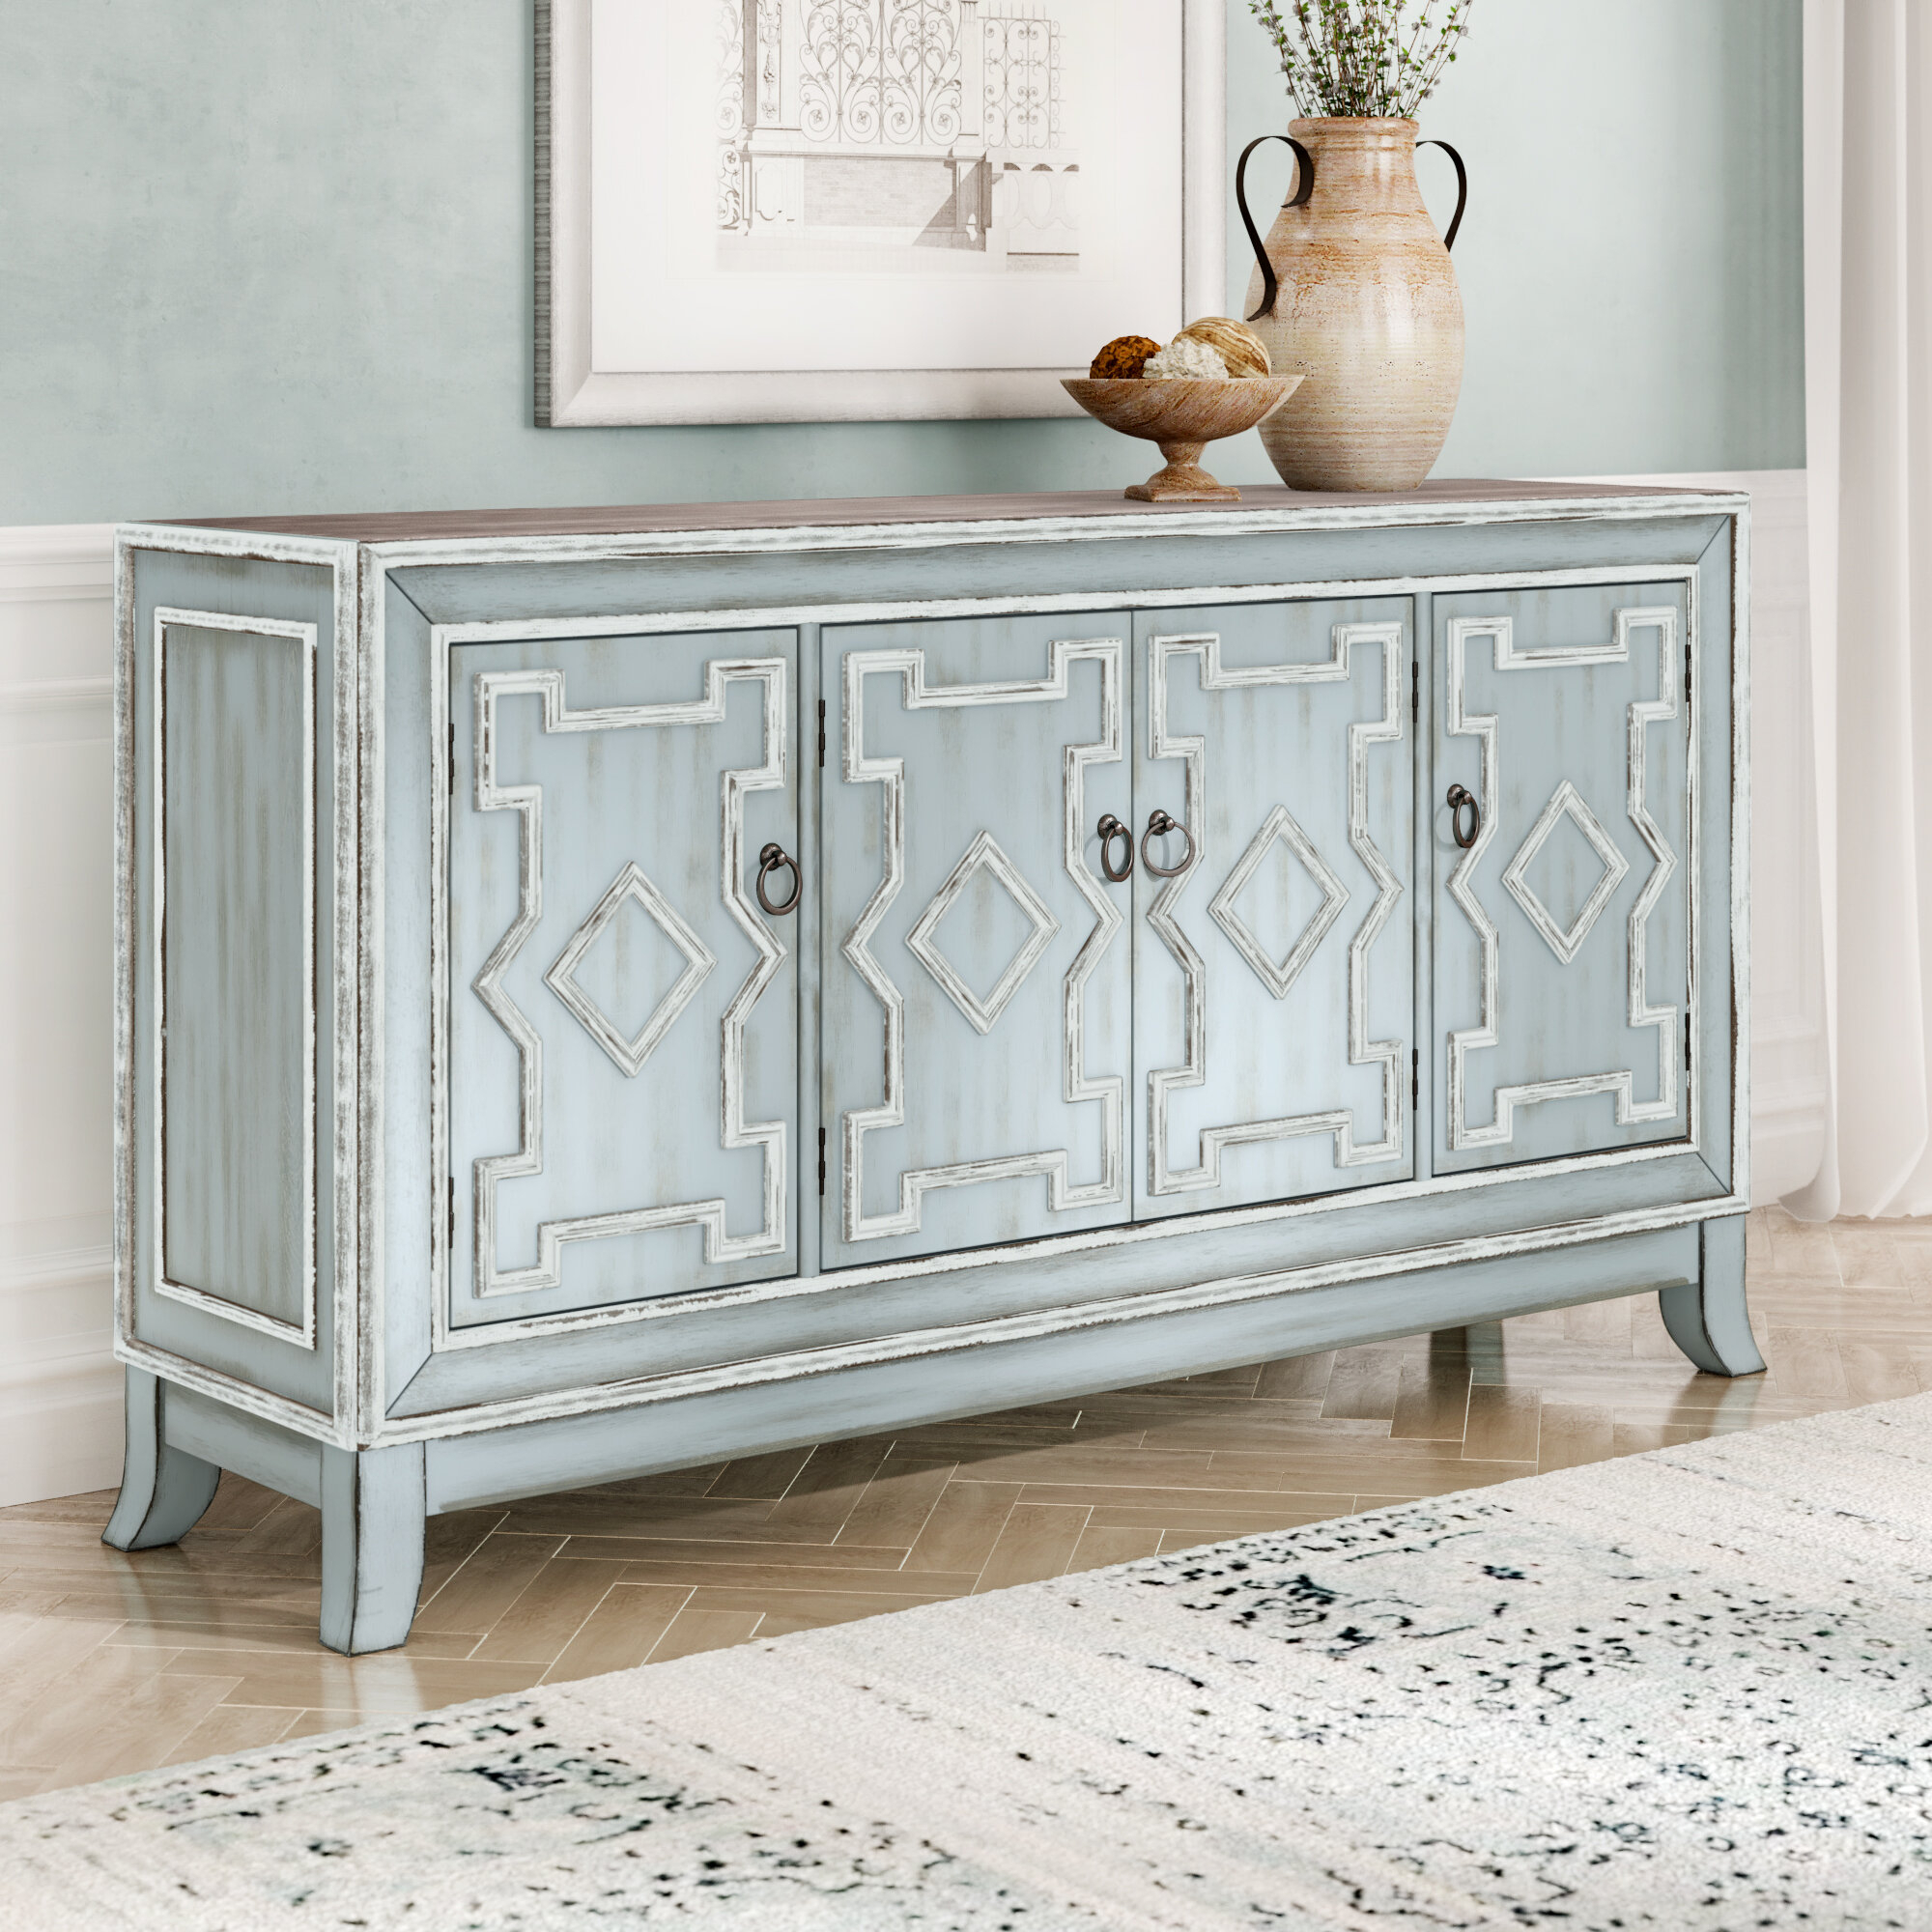 Antique Sideboard | Wayfair throughout Chaffins Sideboards (Image 8 of 30)